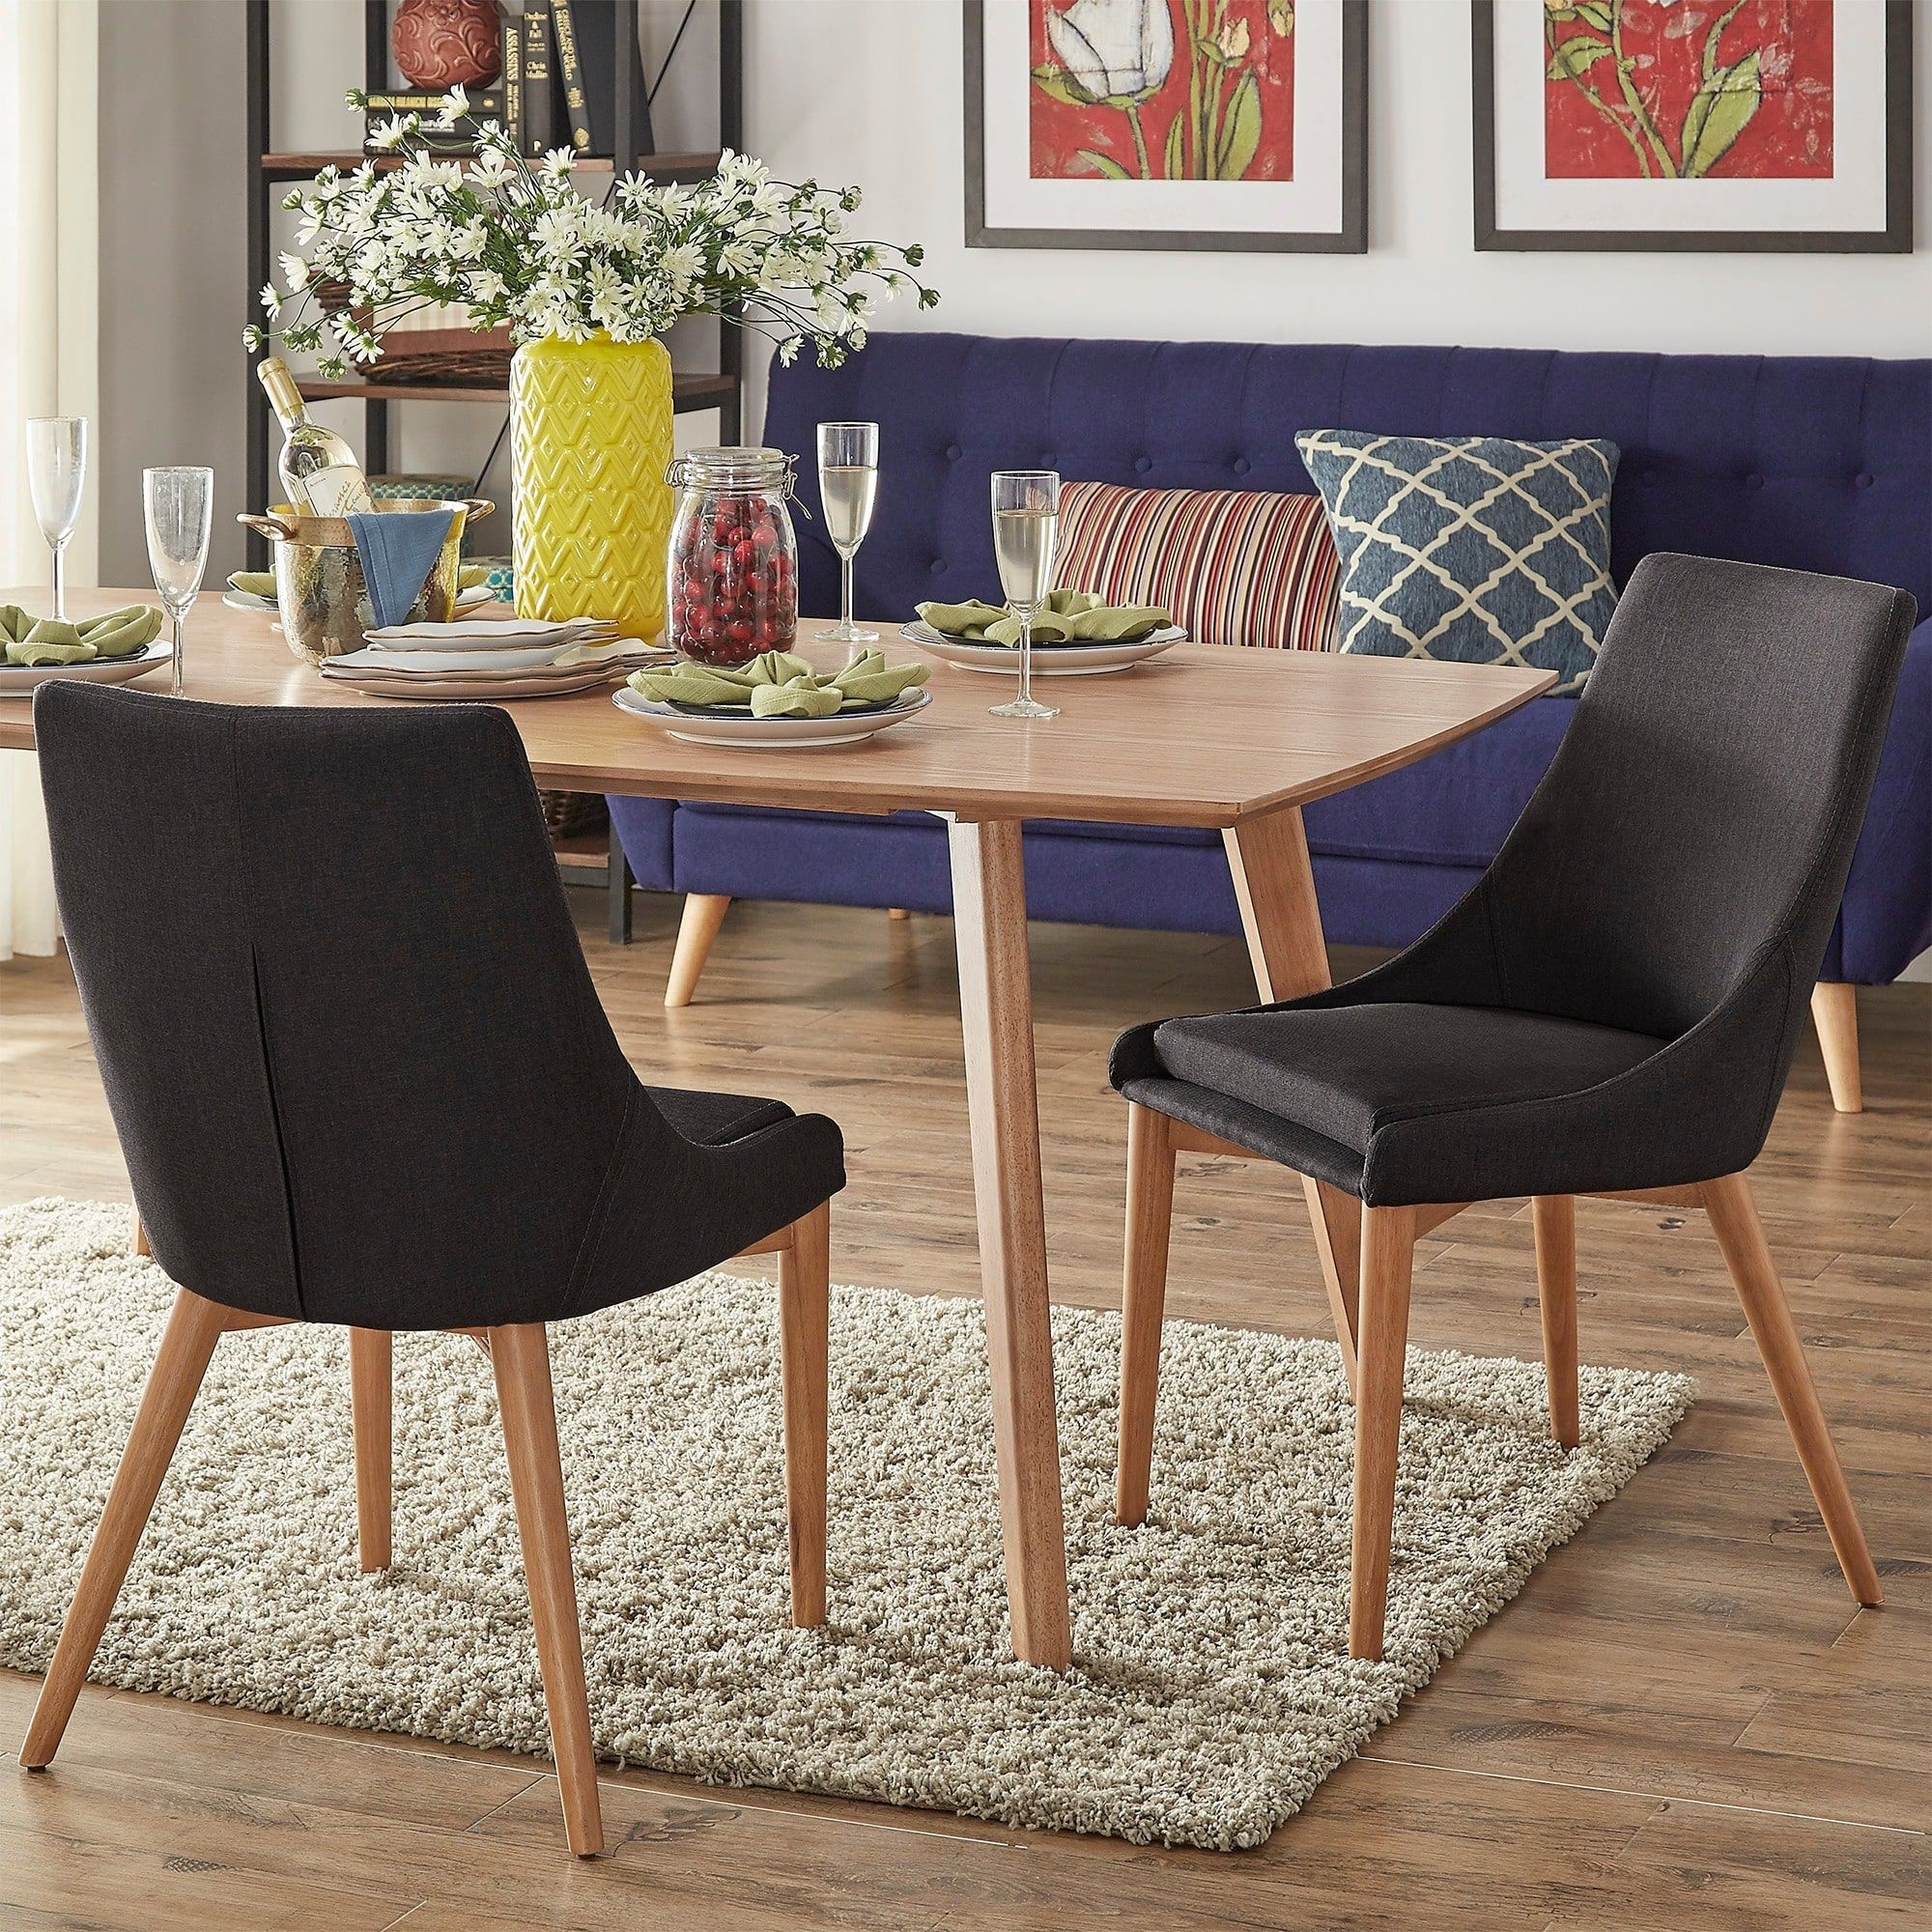 Sasha Oak Barrel Back Dining Chair (Set of 2) iNSPIRE Q Modern (Dark